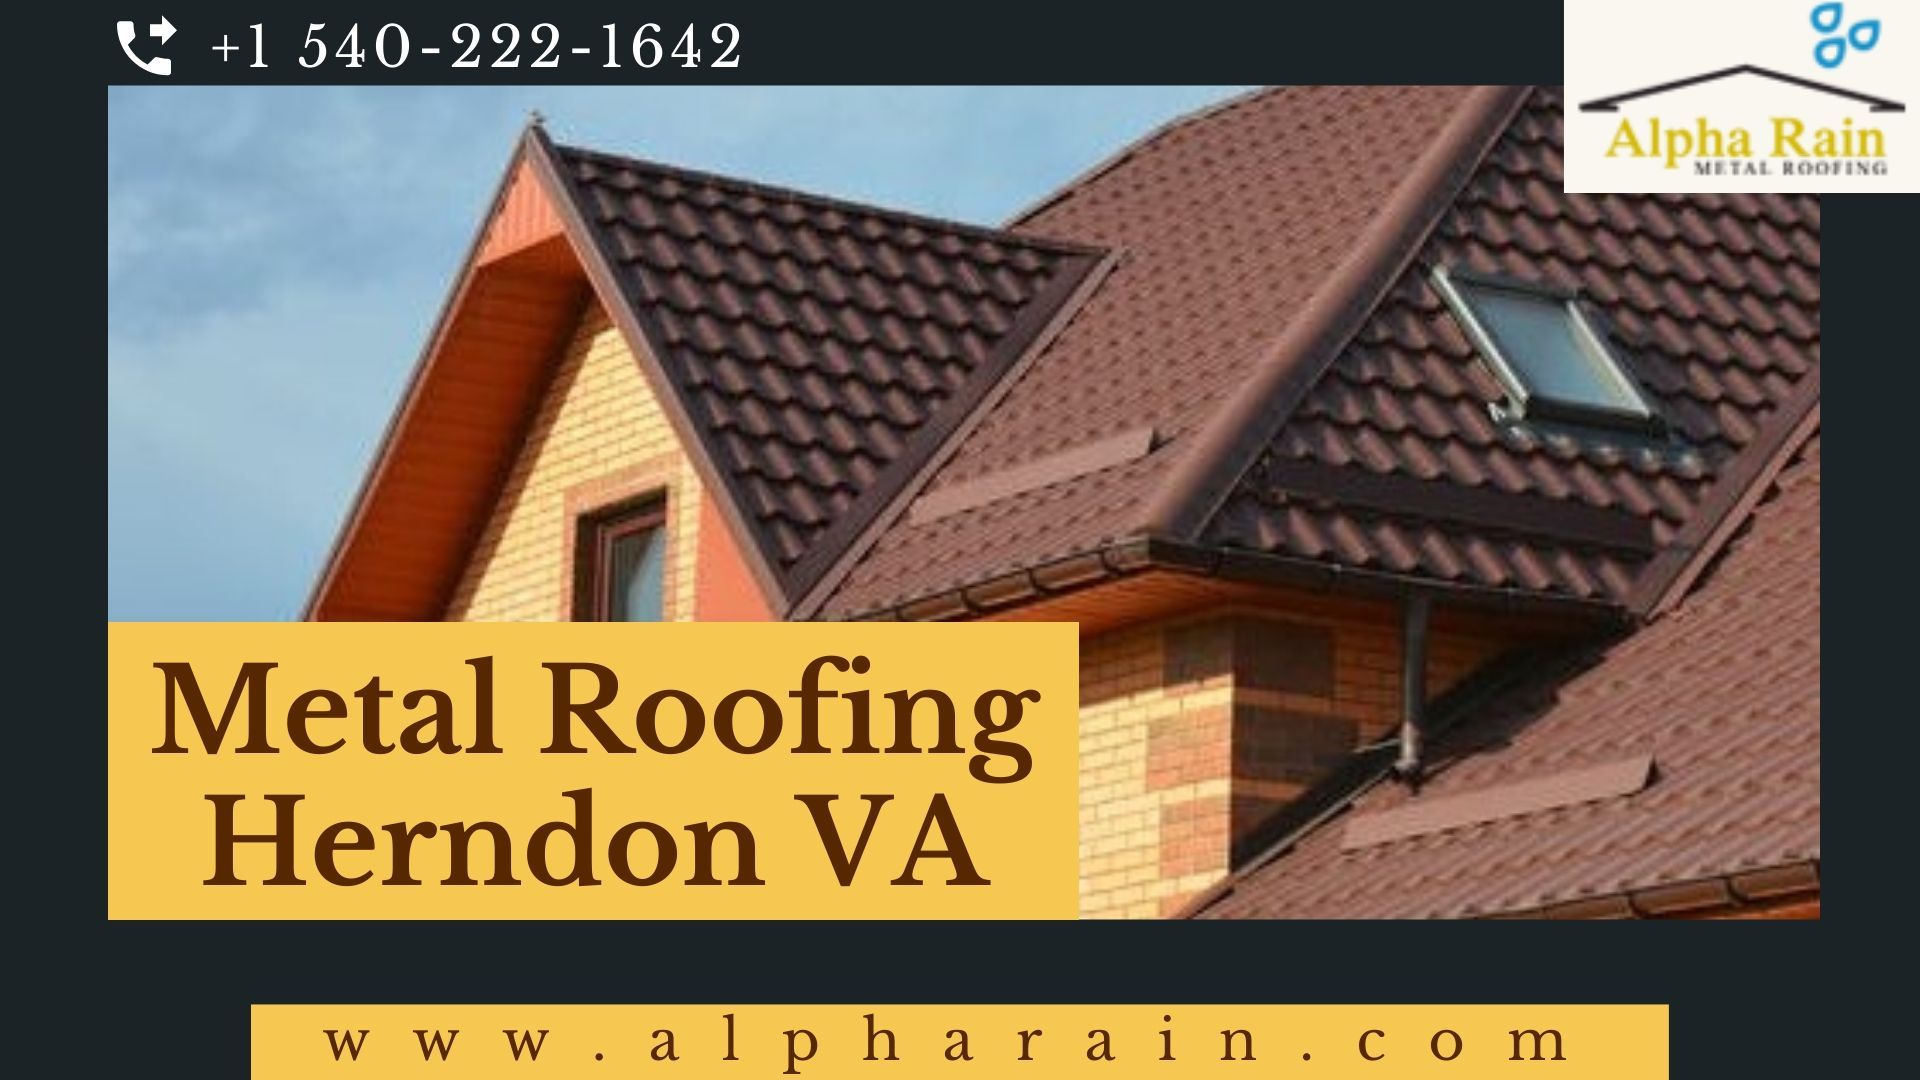 The Metal Roofing Company In Herndon Va Are Remodelling The Houses With Their Fresh Developed Skilled And By The Efforts Of The Labo Metal Roof Roofing Herndon